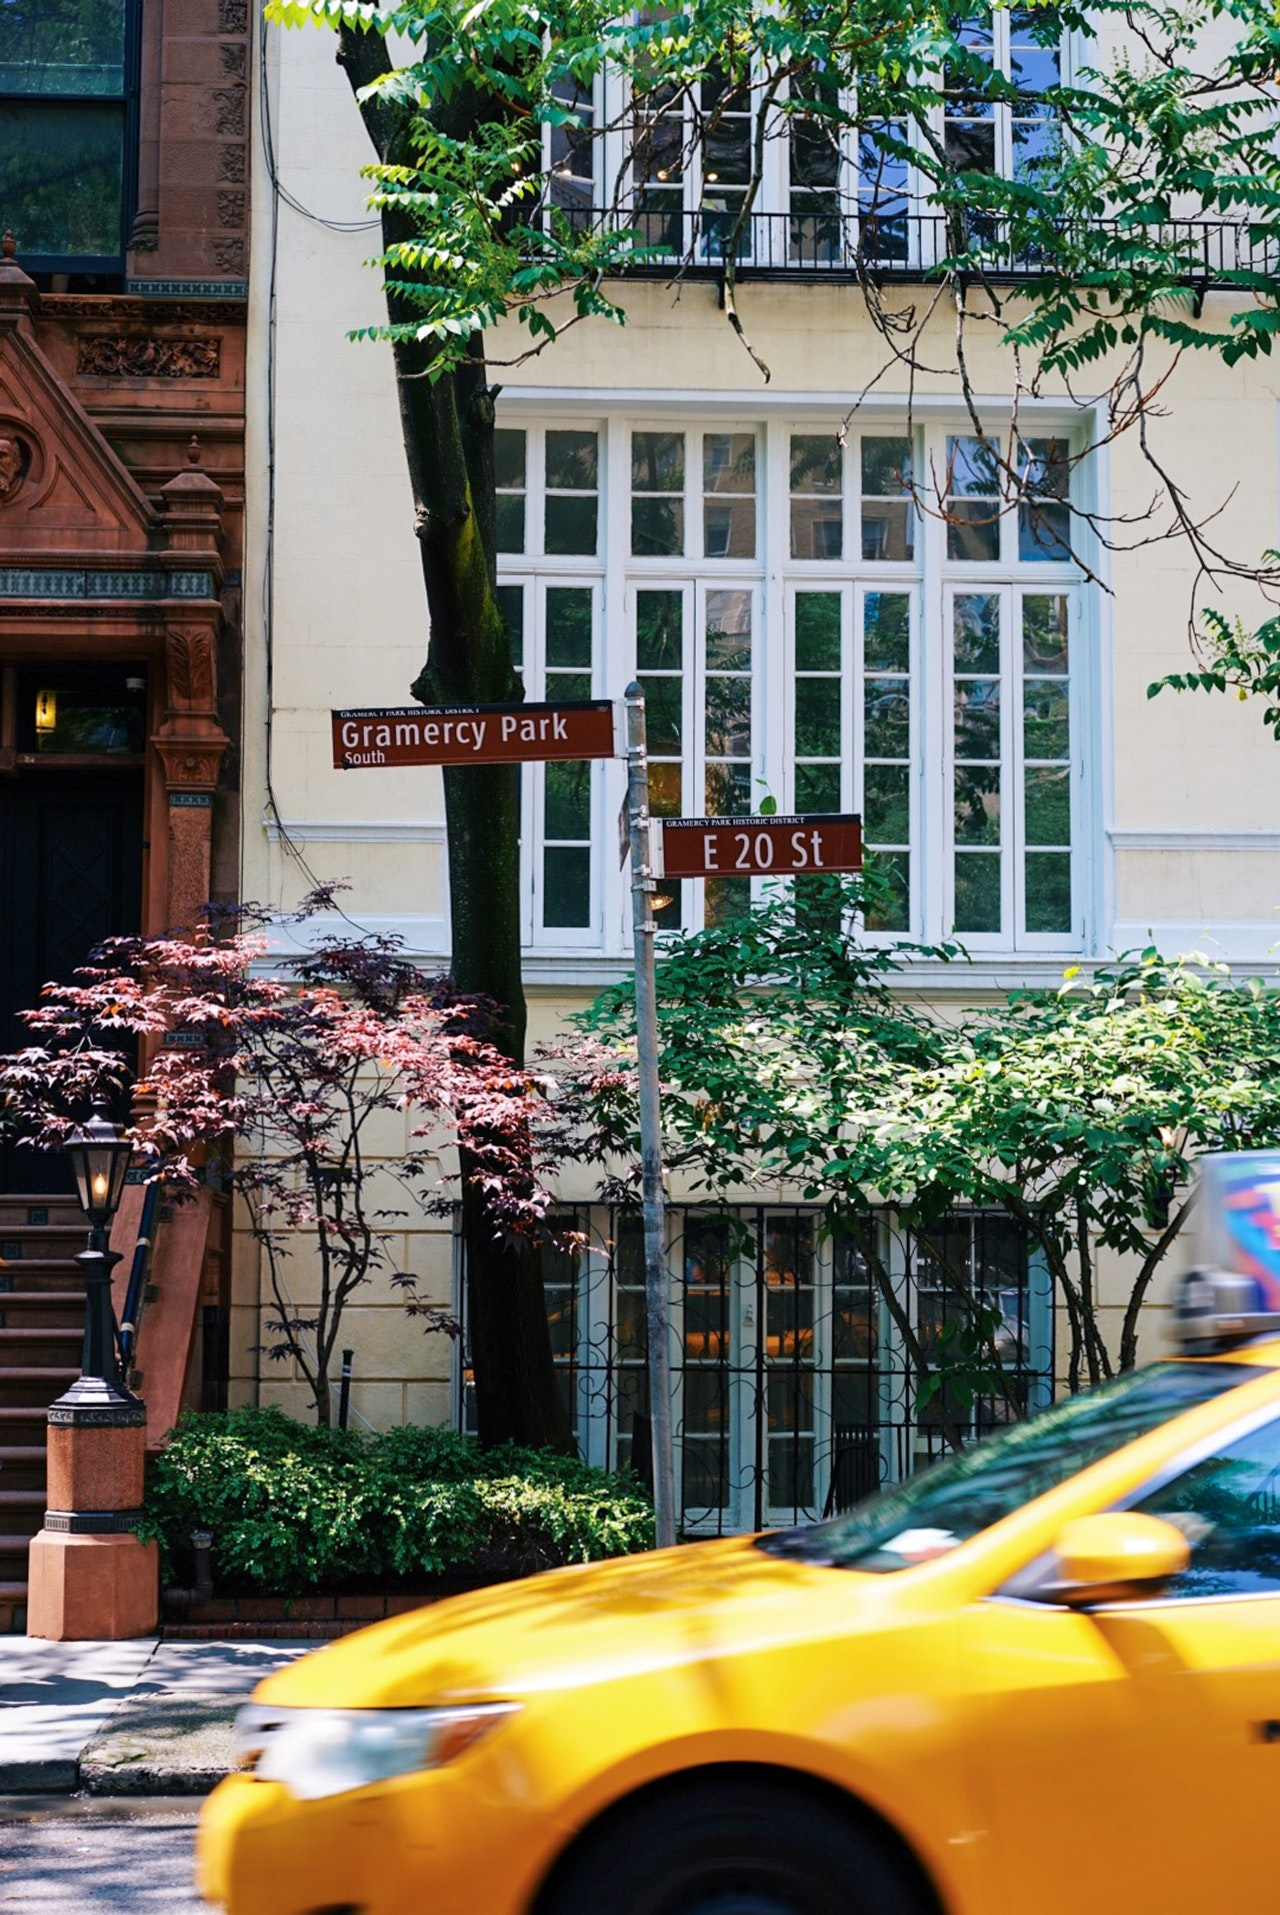 Moving to Gramercy Park